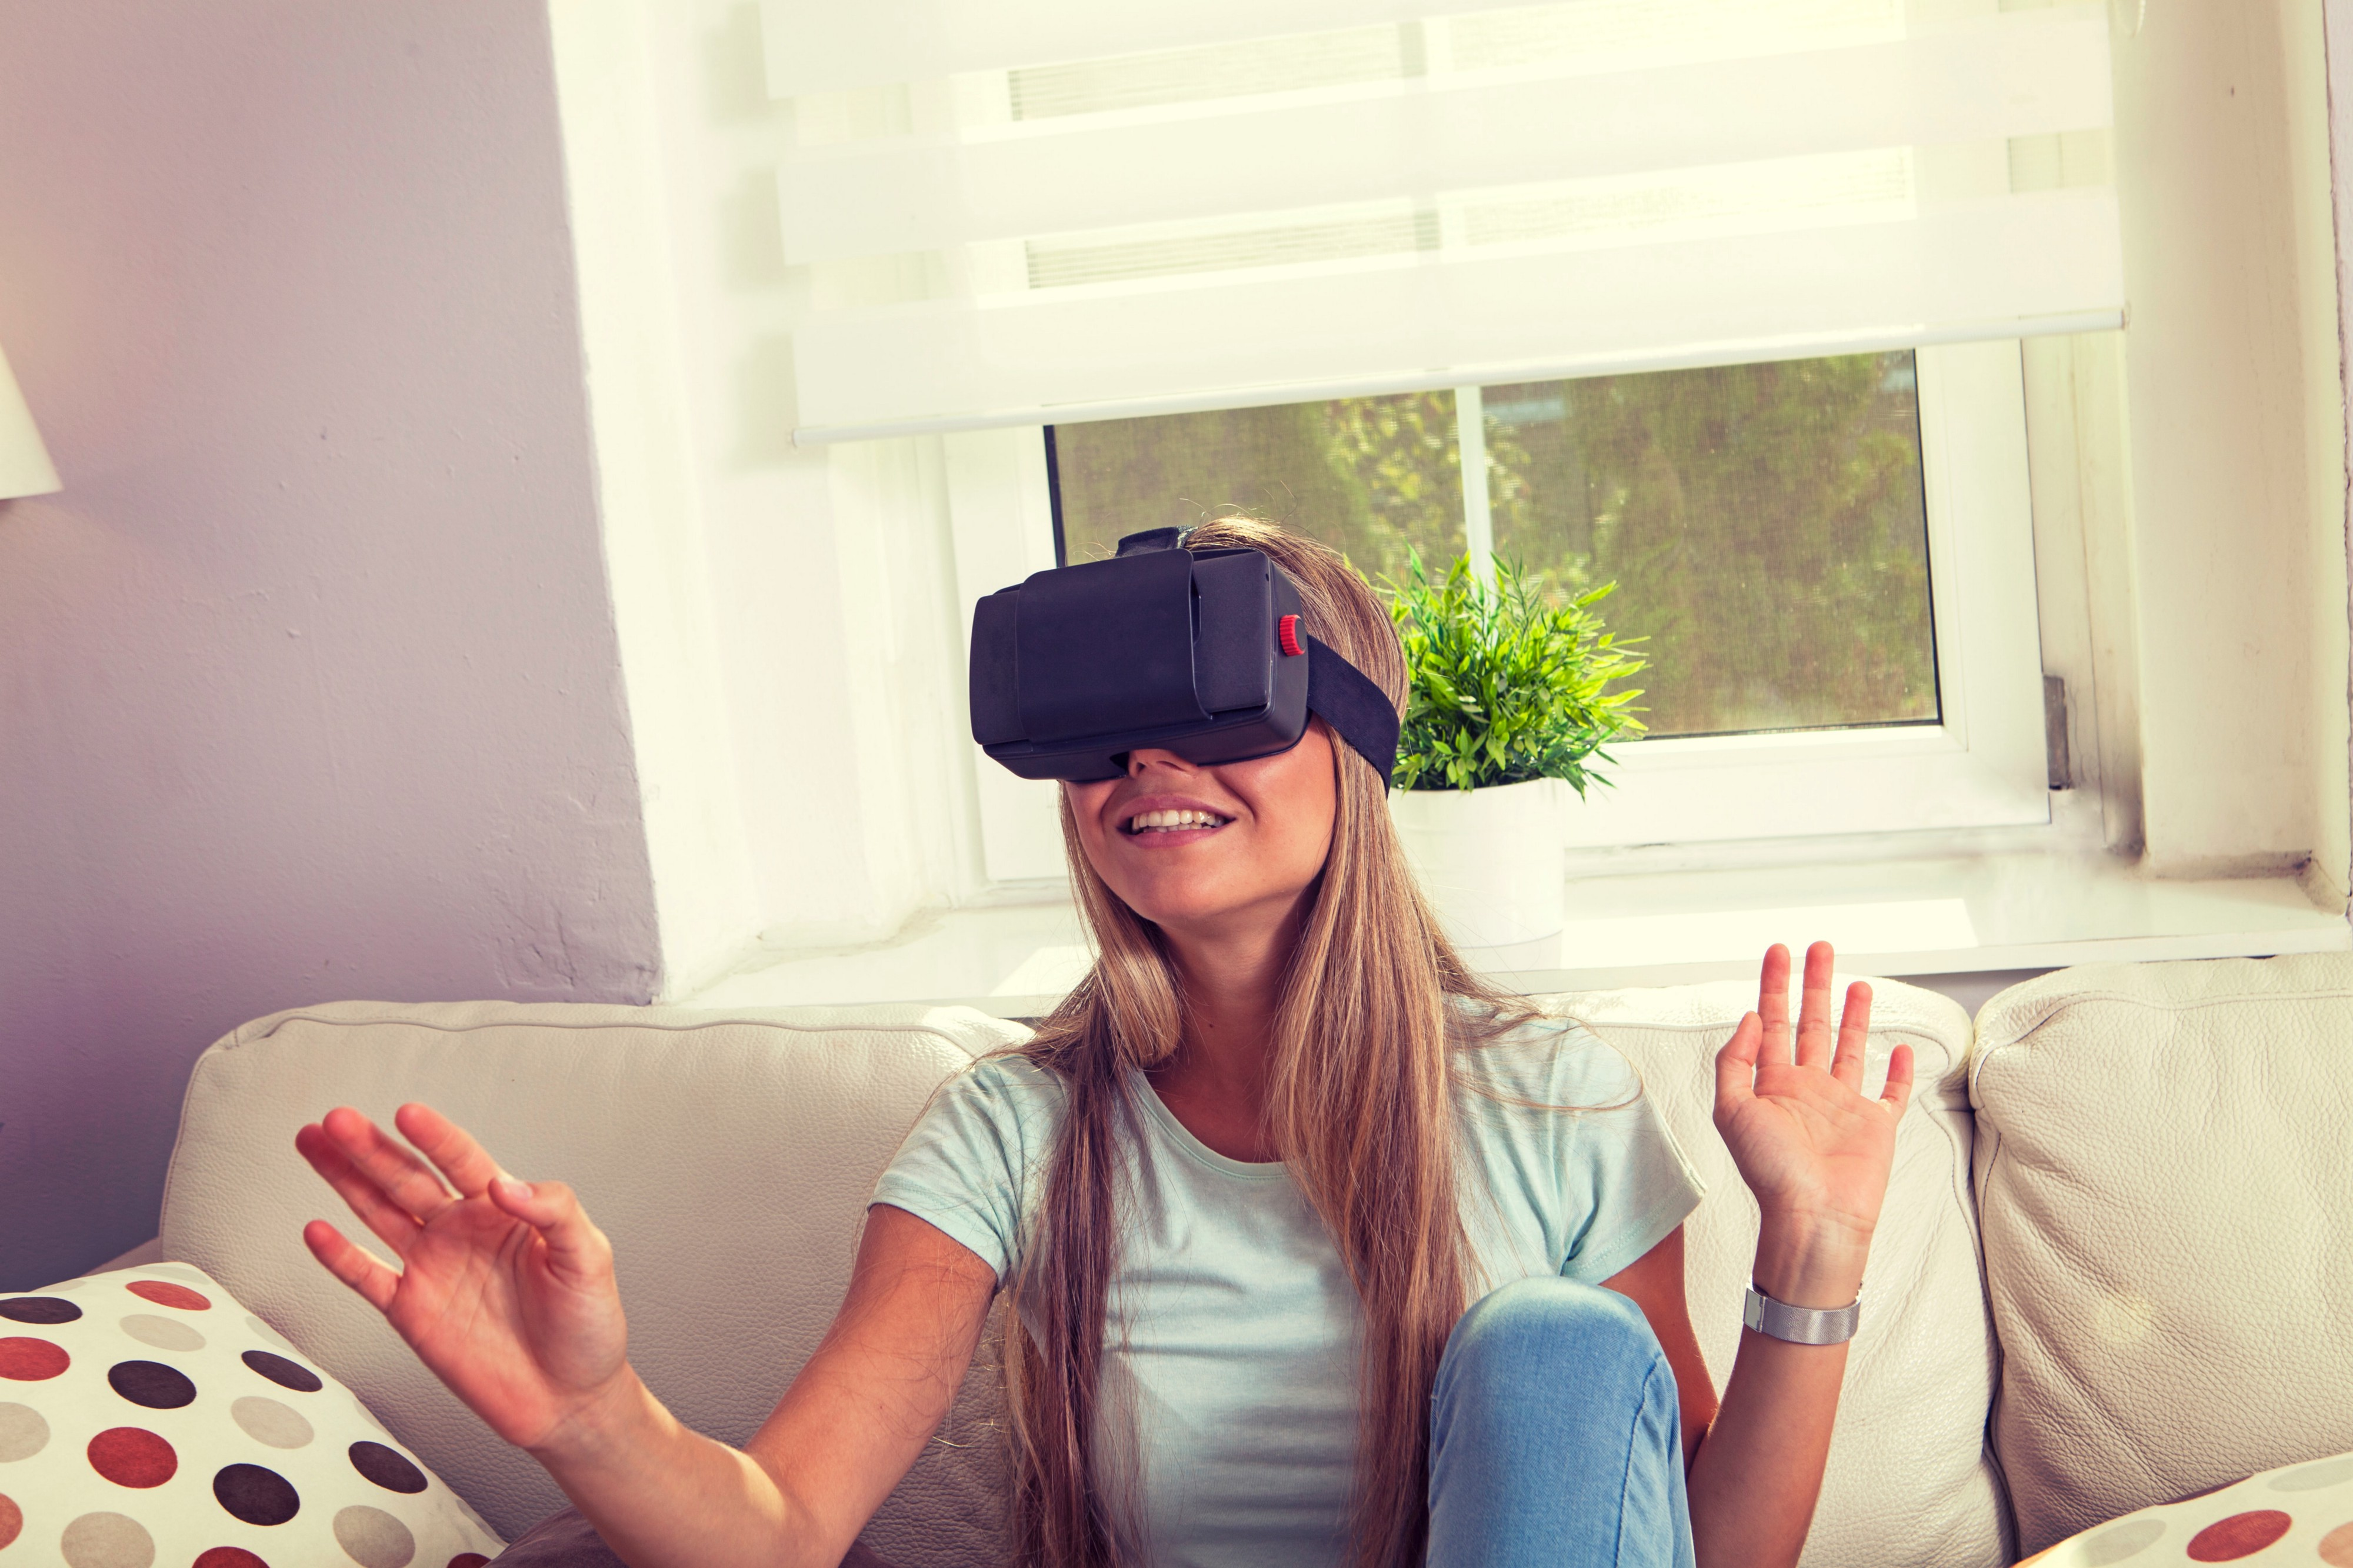 Is virtual reality the future of video conferencing? | by Andreas Sandre |  Digital Diplomacy | Medium